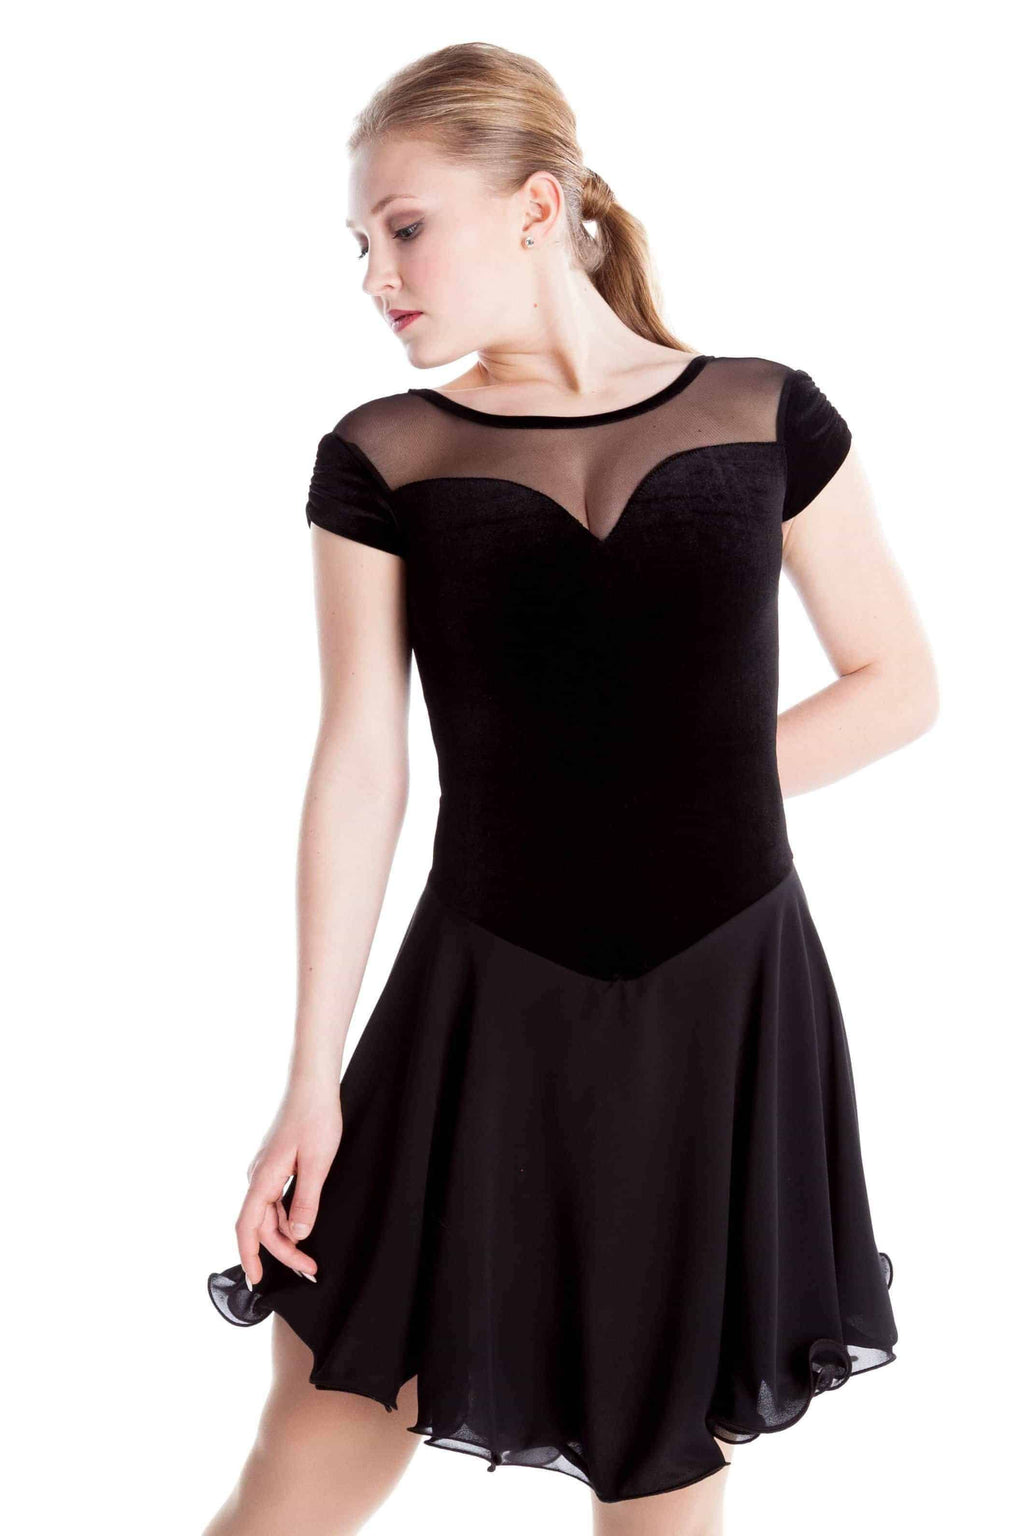 Classic Black Dance Dress - Elite Xpression